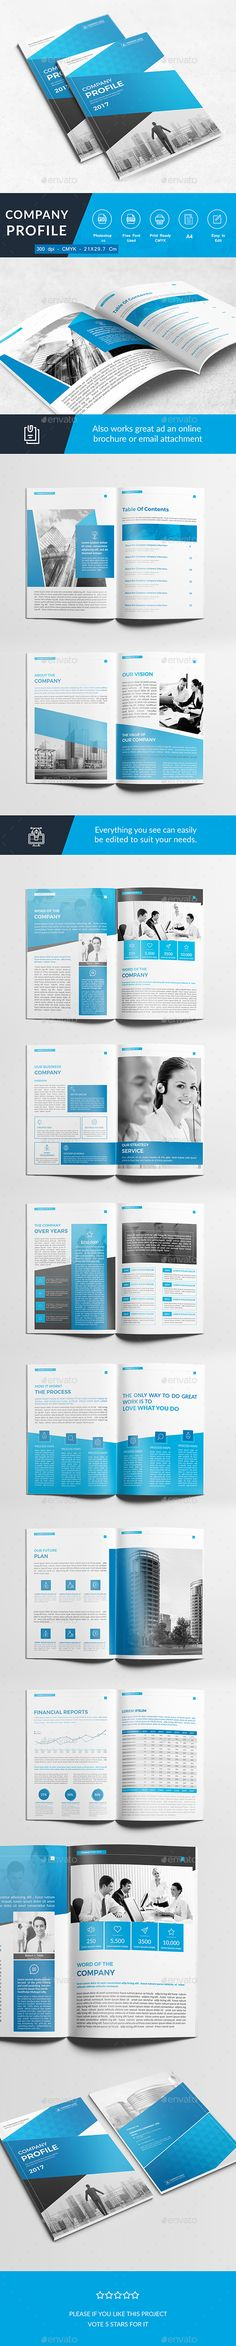 Company Profile - Corporate Brochures | Download: https://graphicriver.net/item/company-profile/18673081?ref=sinzo